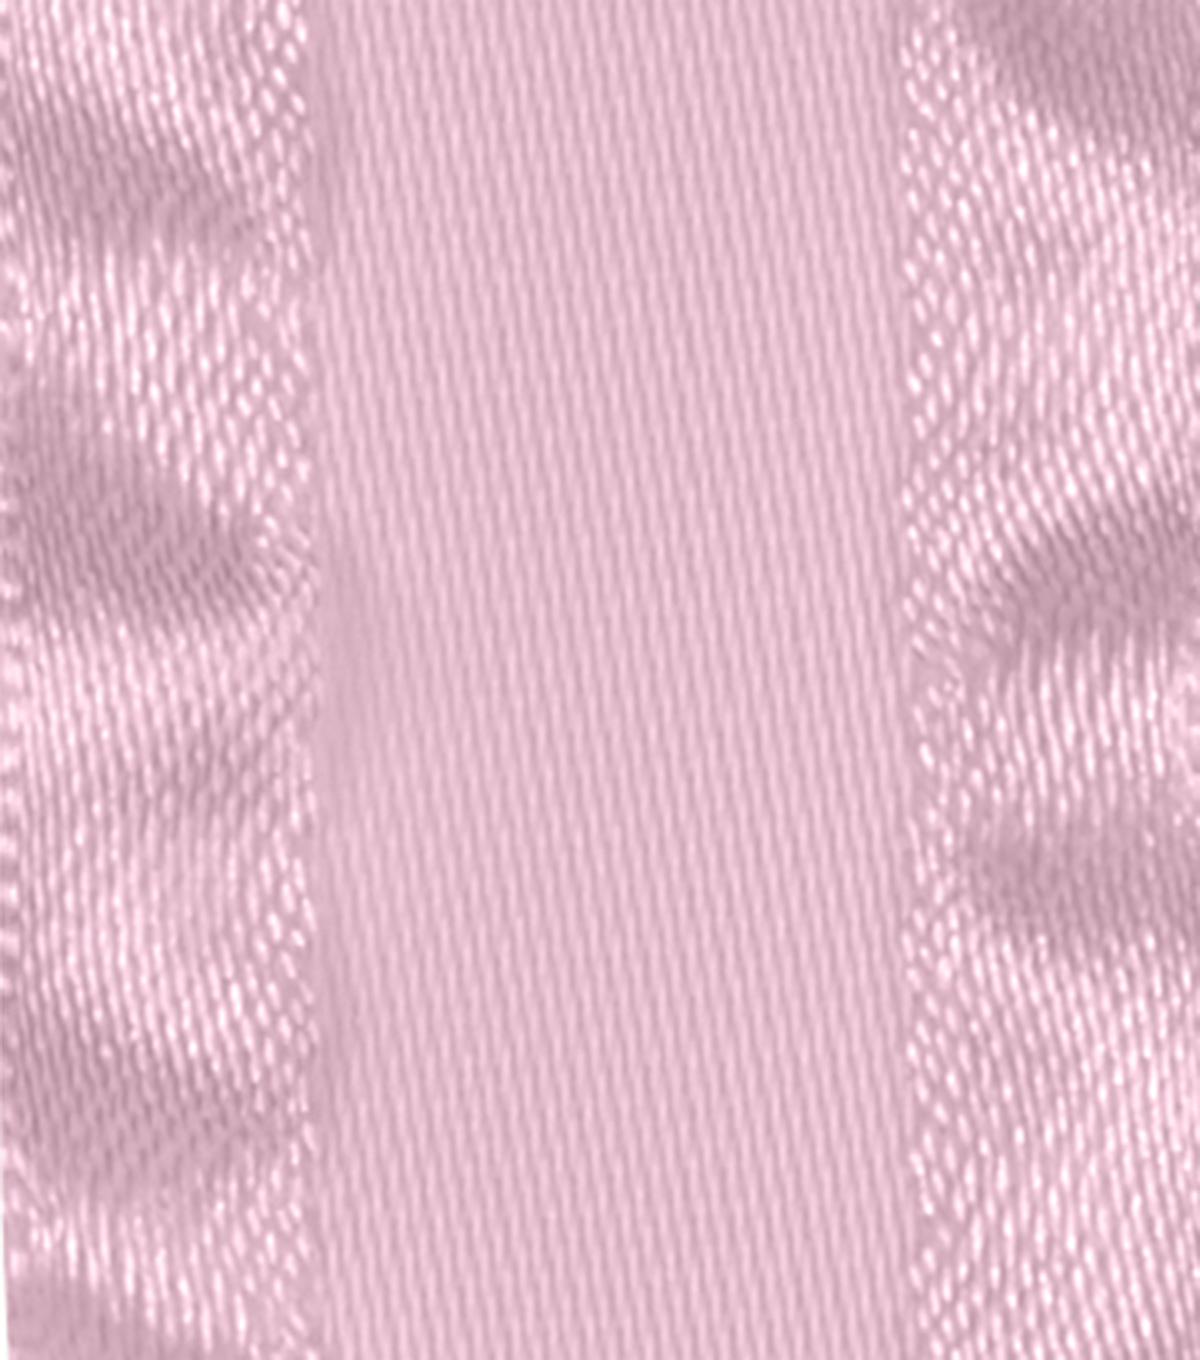 Offray 7/8\u0022x9\u0027 Double Ruffle Satin Solid Ribbon-Light Pink